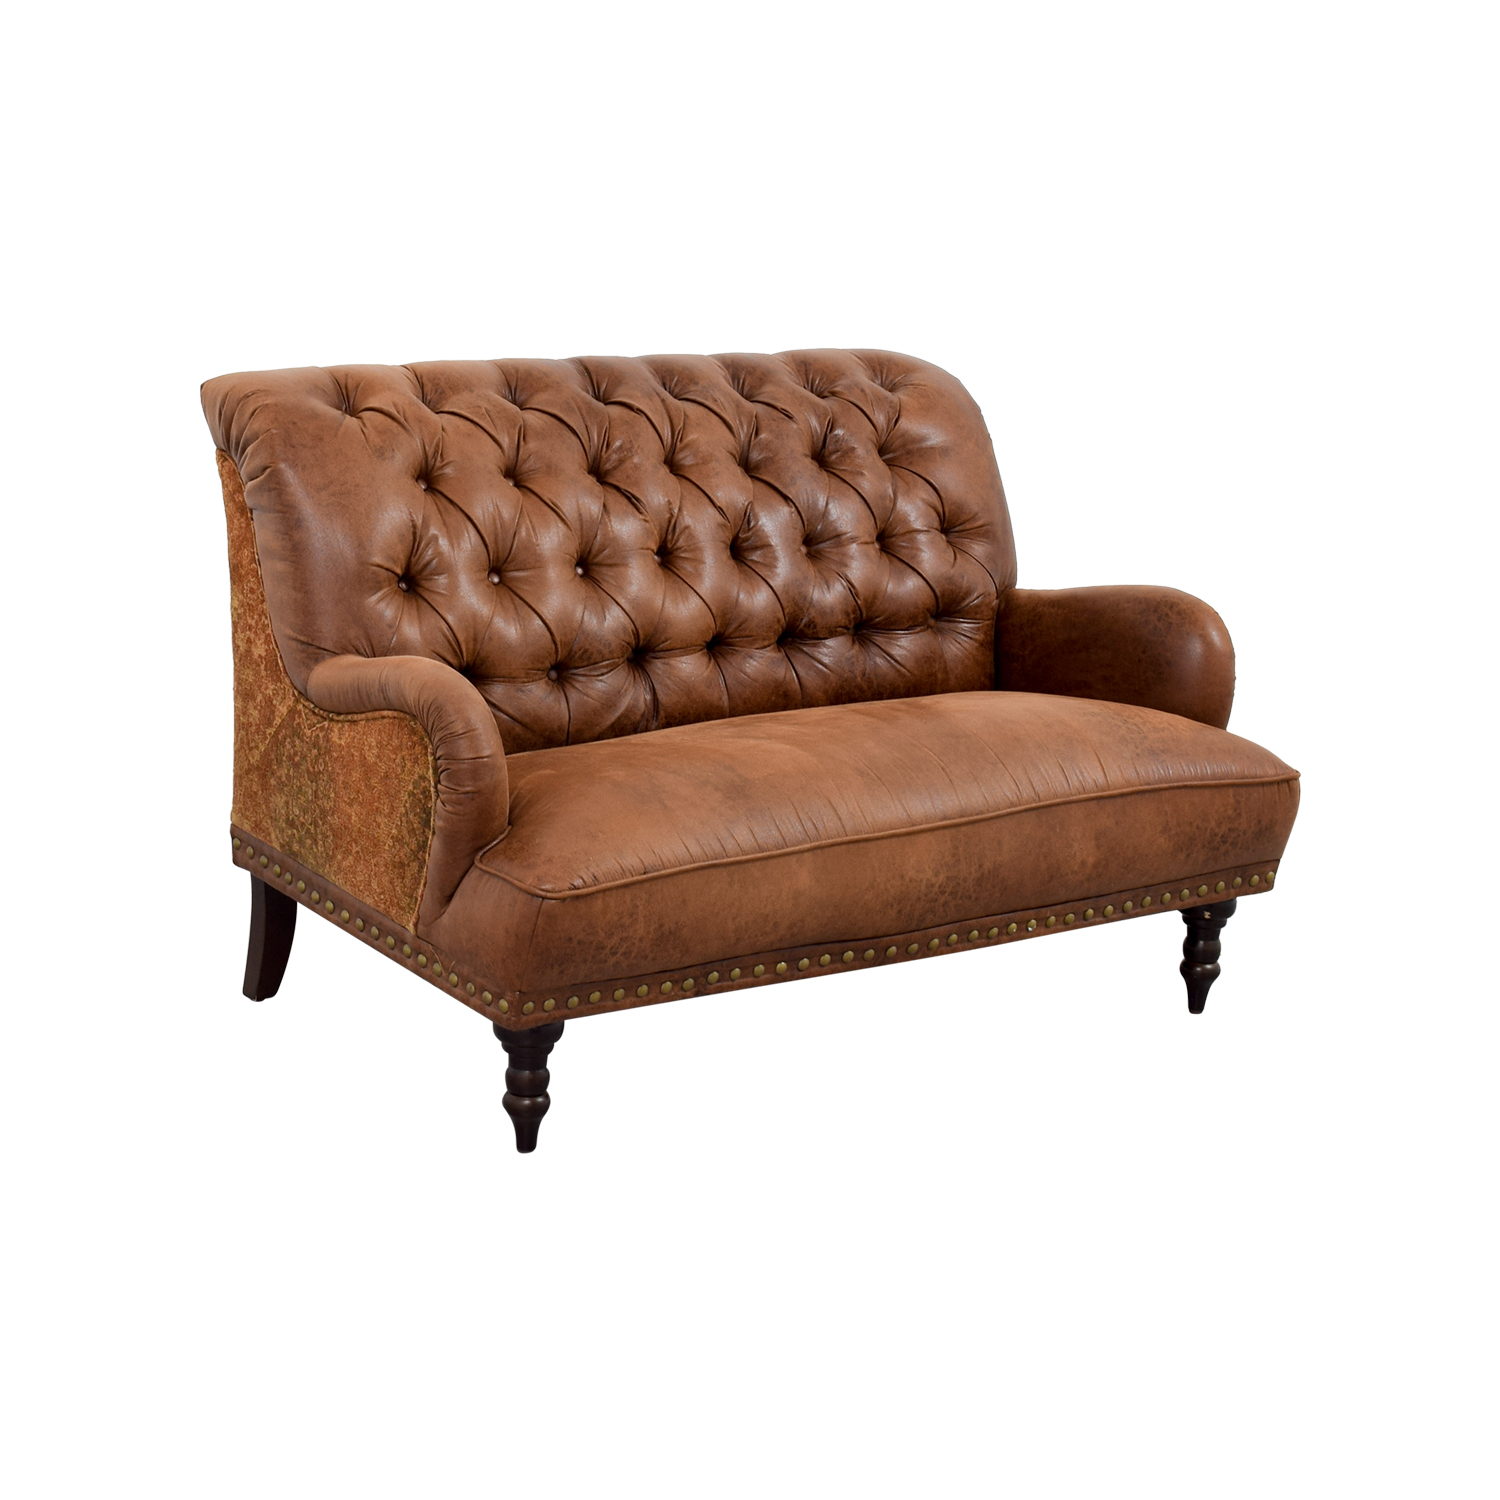 Pleasing 36 Off Pier 1 Pier 1 Imports Faux Vintage Tufted Brown Leather Sofa Sofas Ibusinesslaw Wood Chair Design Ideas Ibusinesslaworg